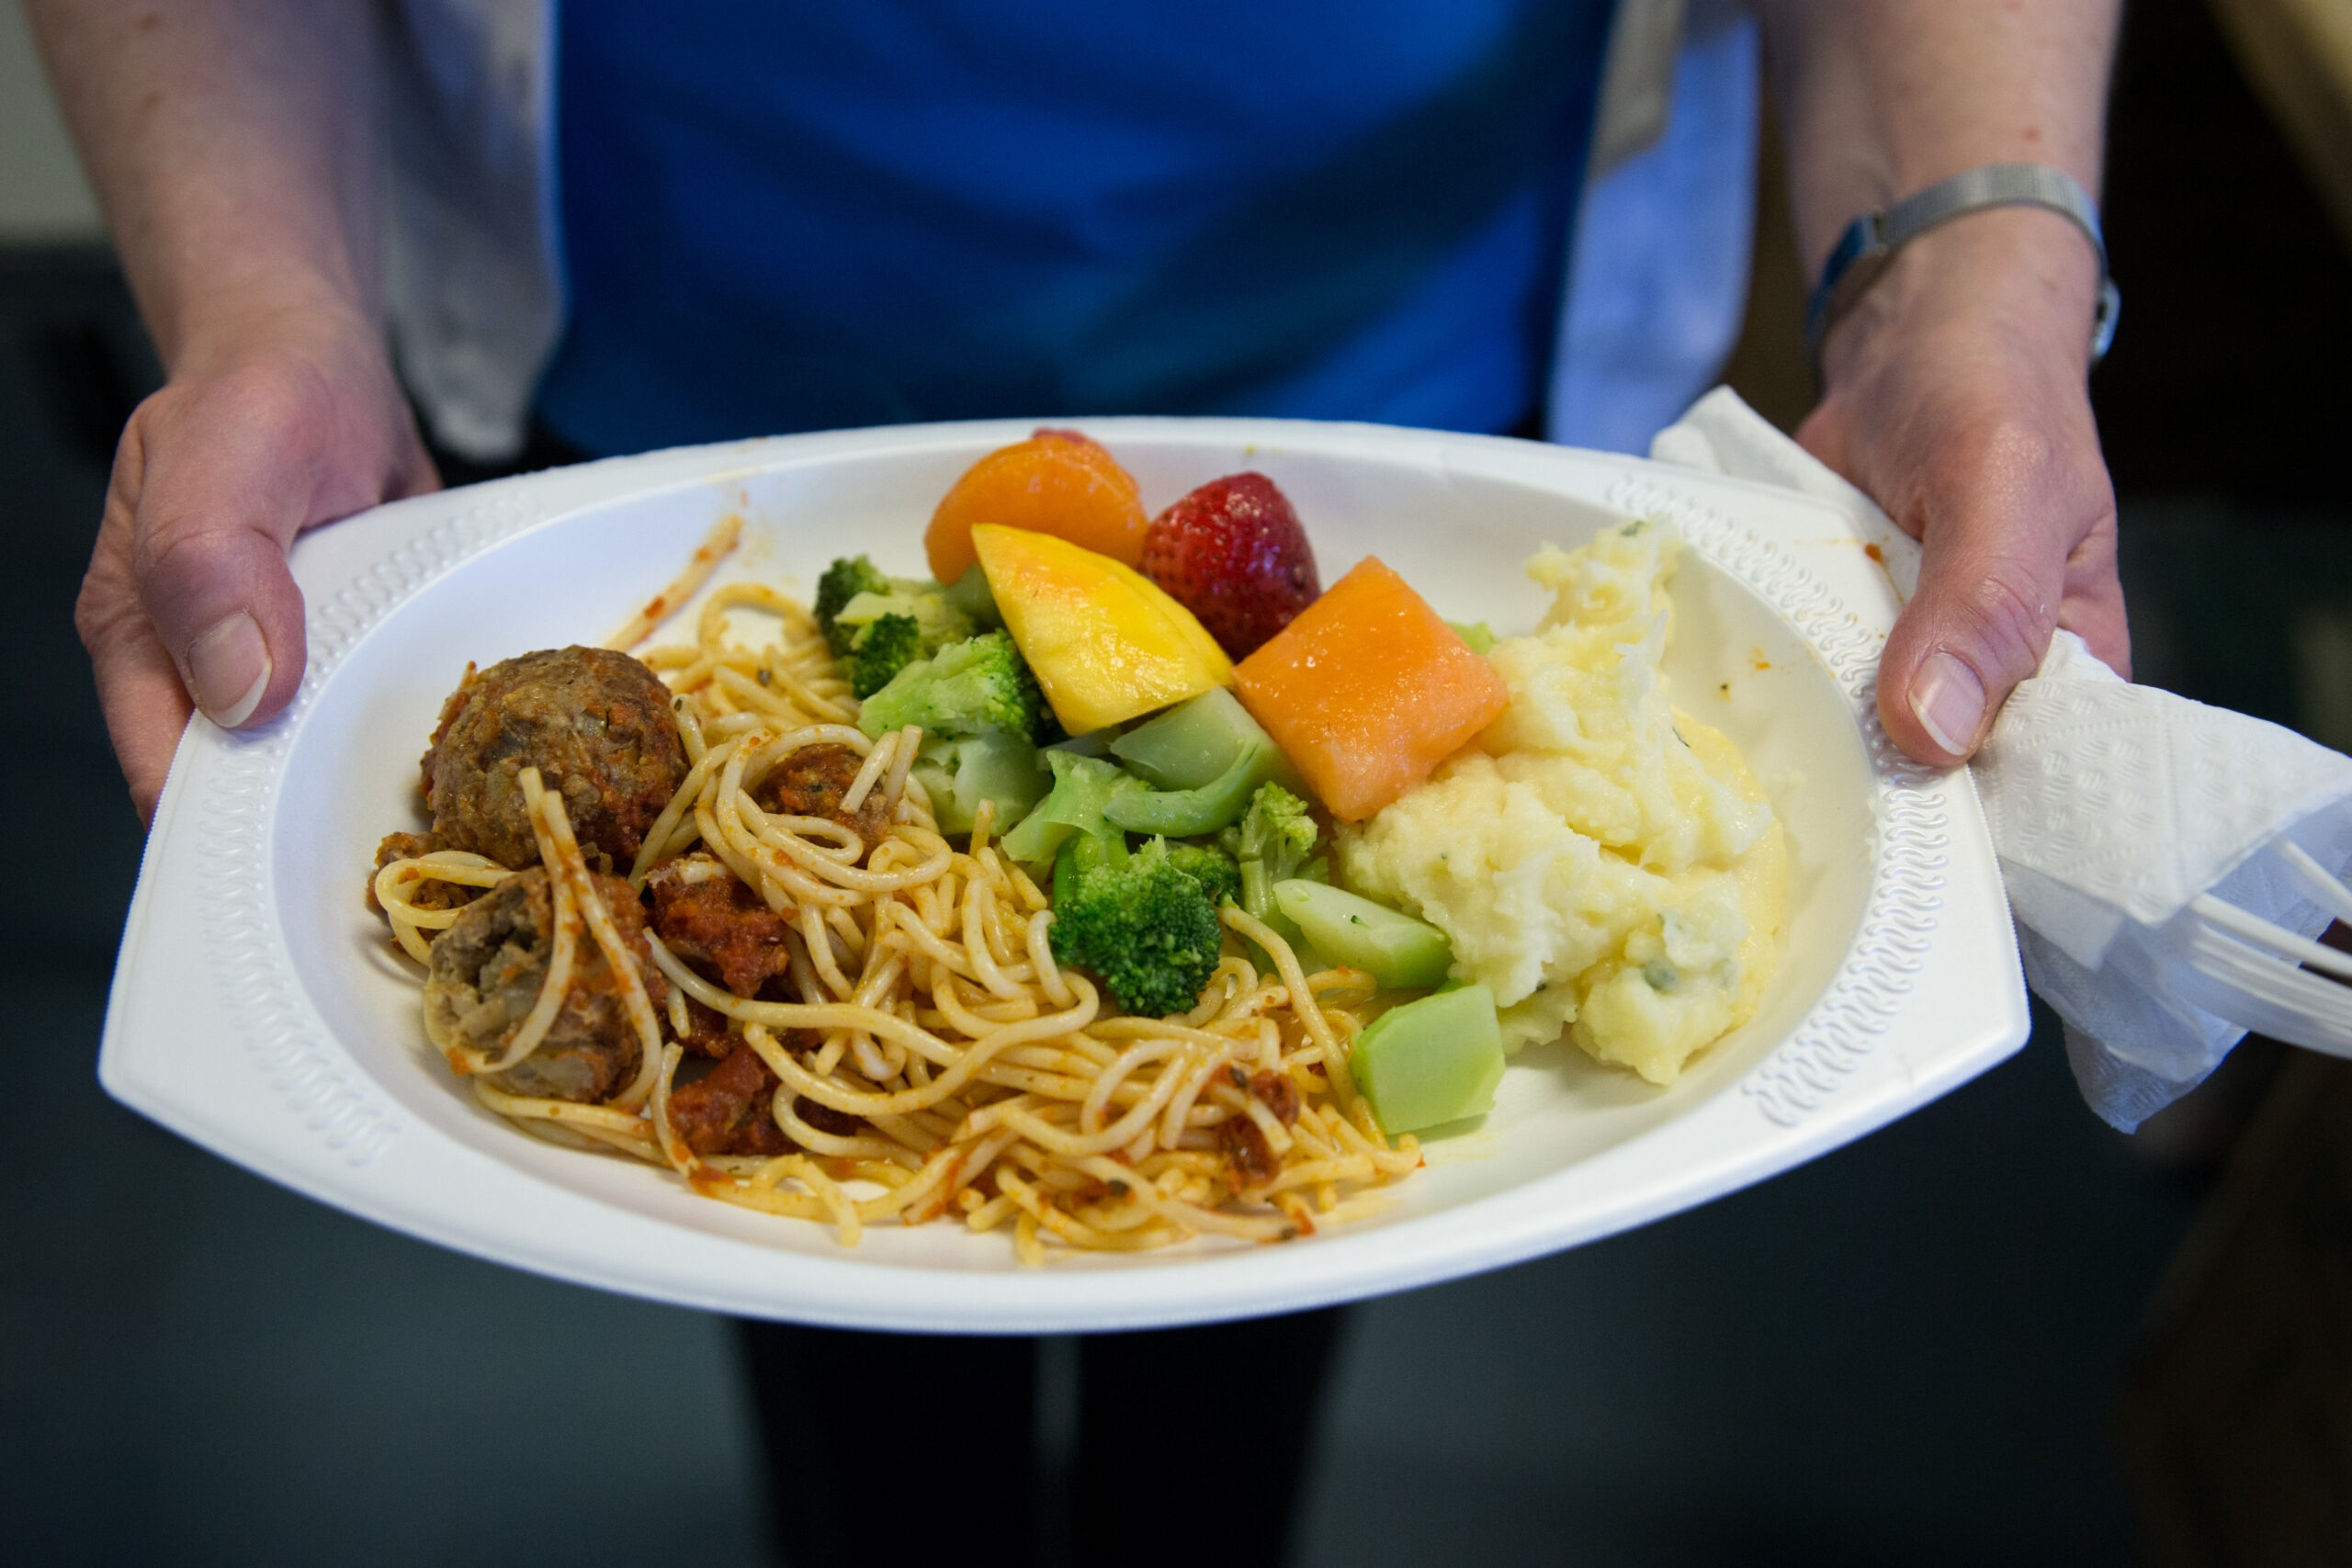 Paper plate with fruit, broccoli, and spaghetti and meatballs